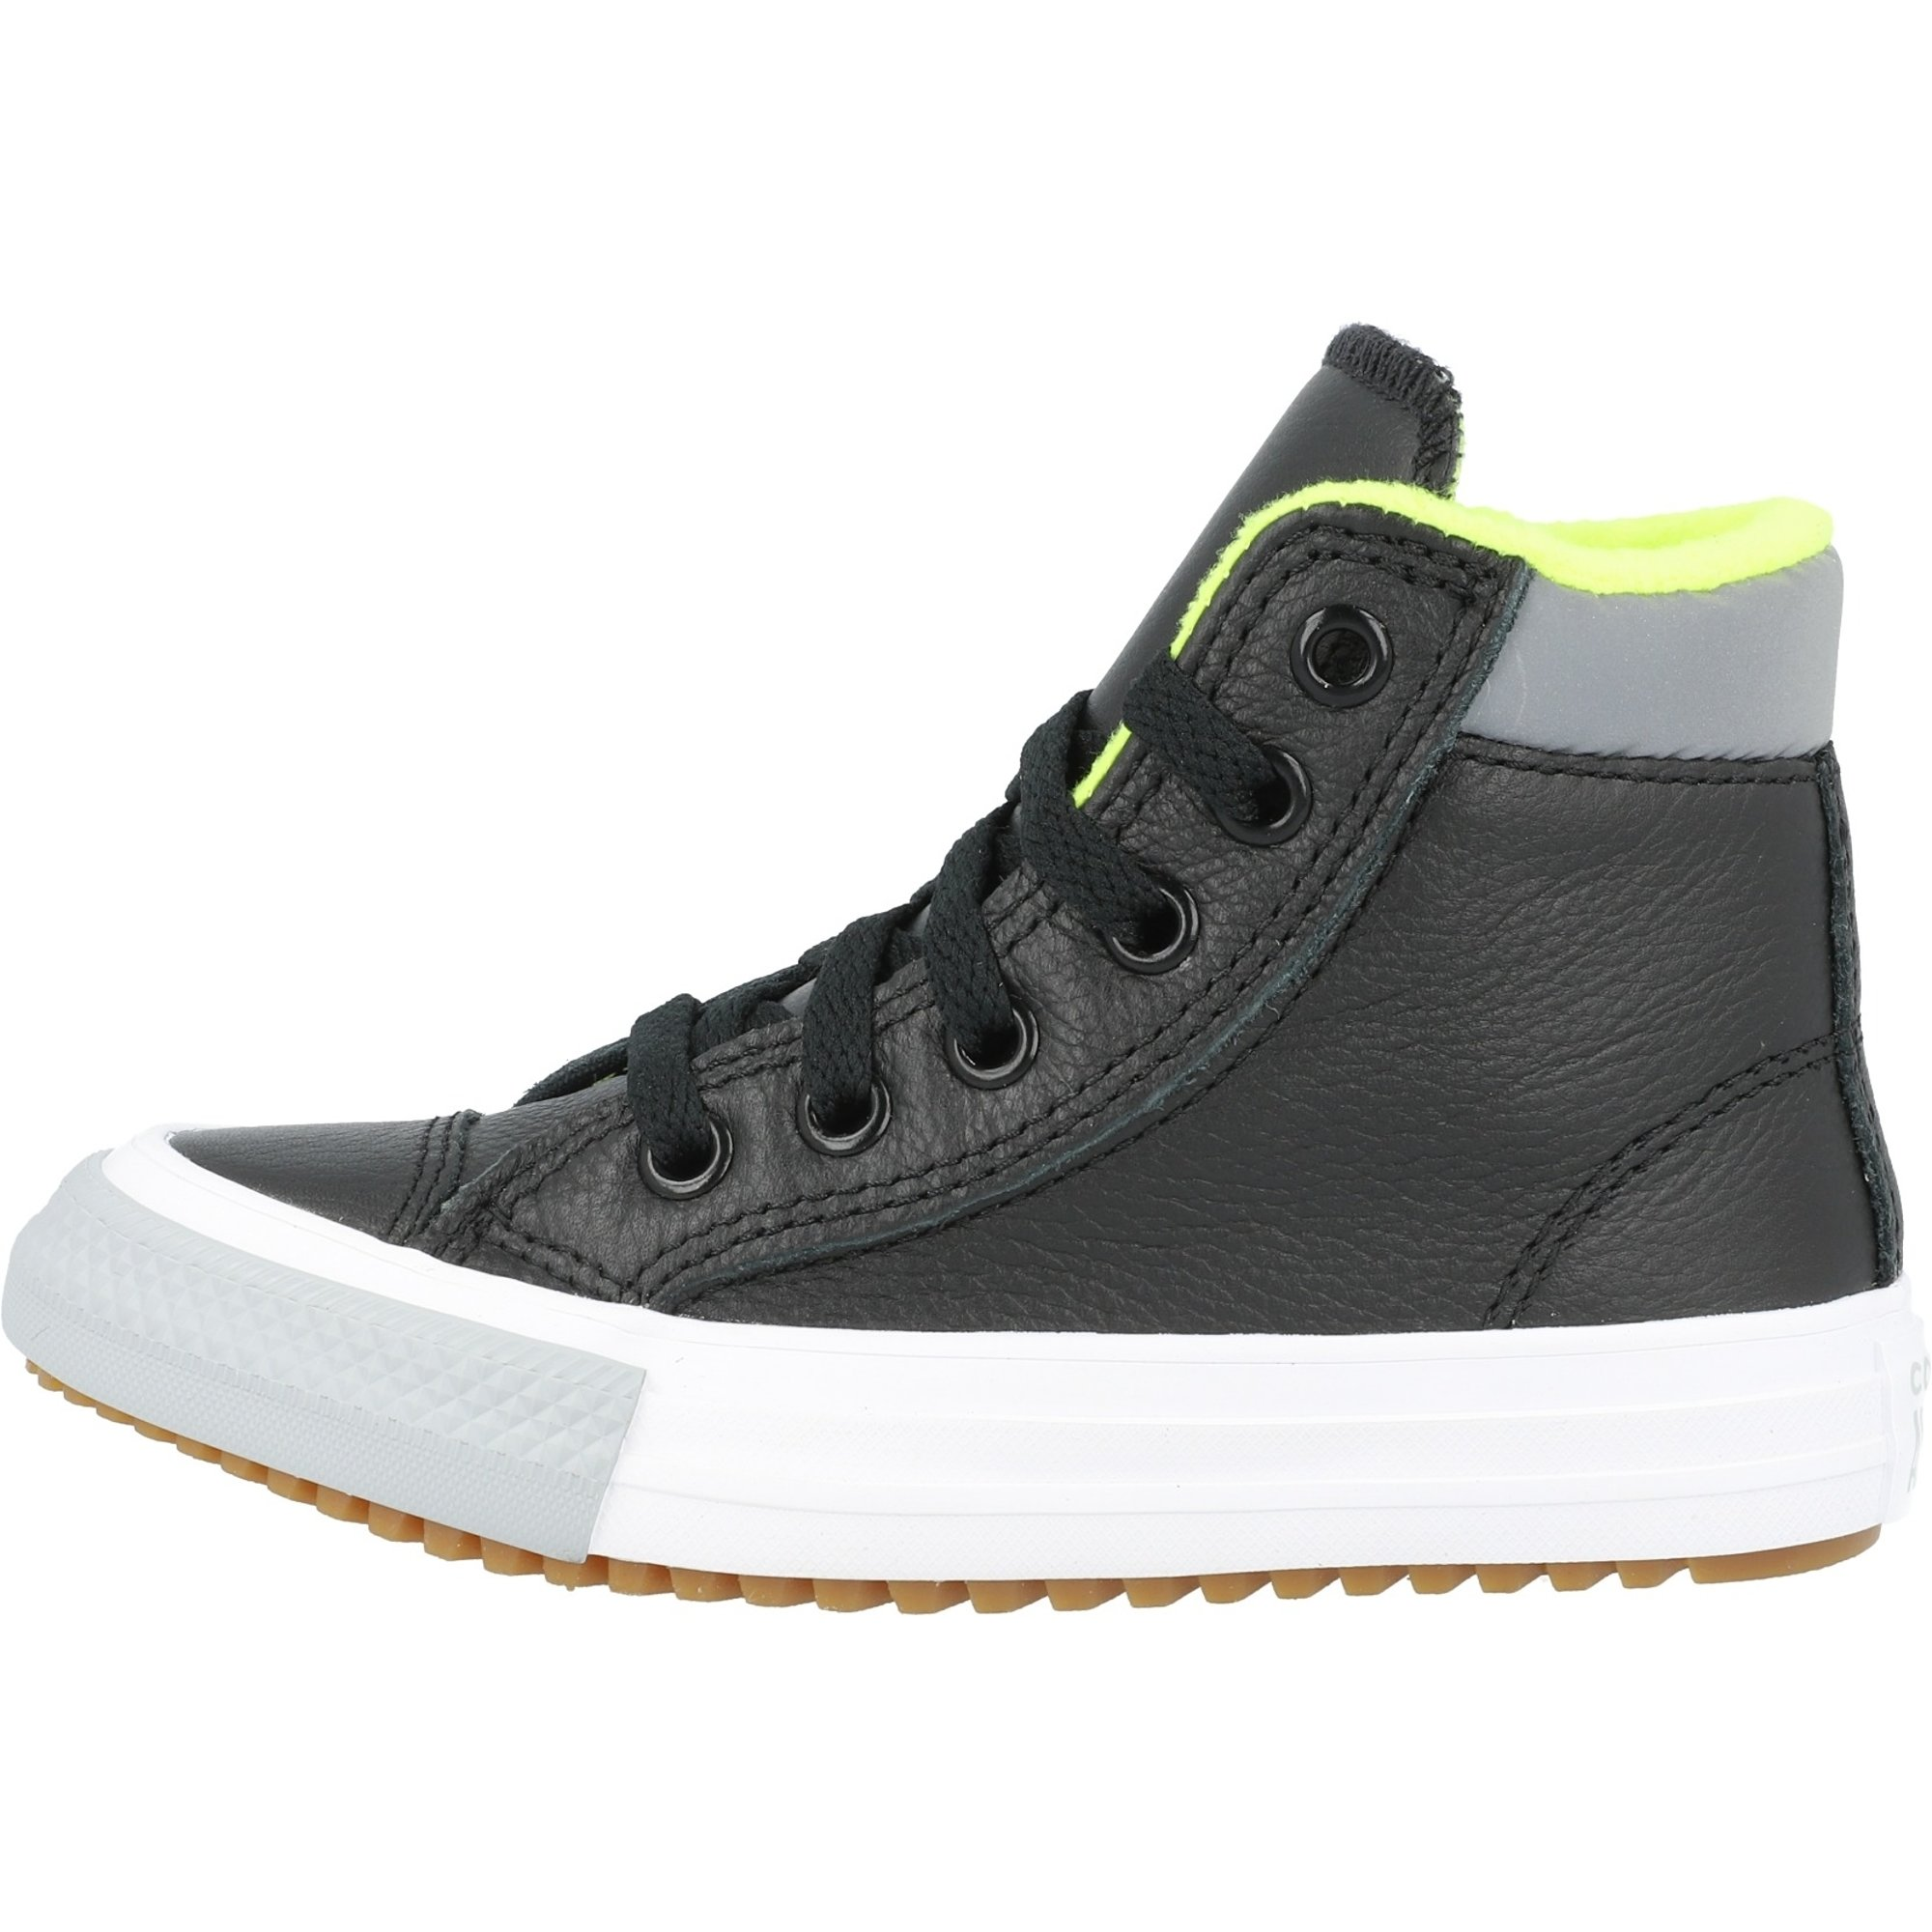 Converse Chuck Taylor All Star PC Boot Hi Utility Leather Black/Ash Stone Leather